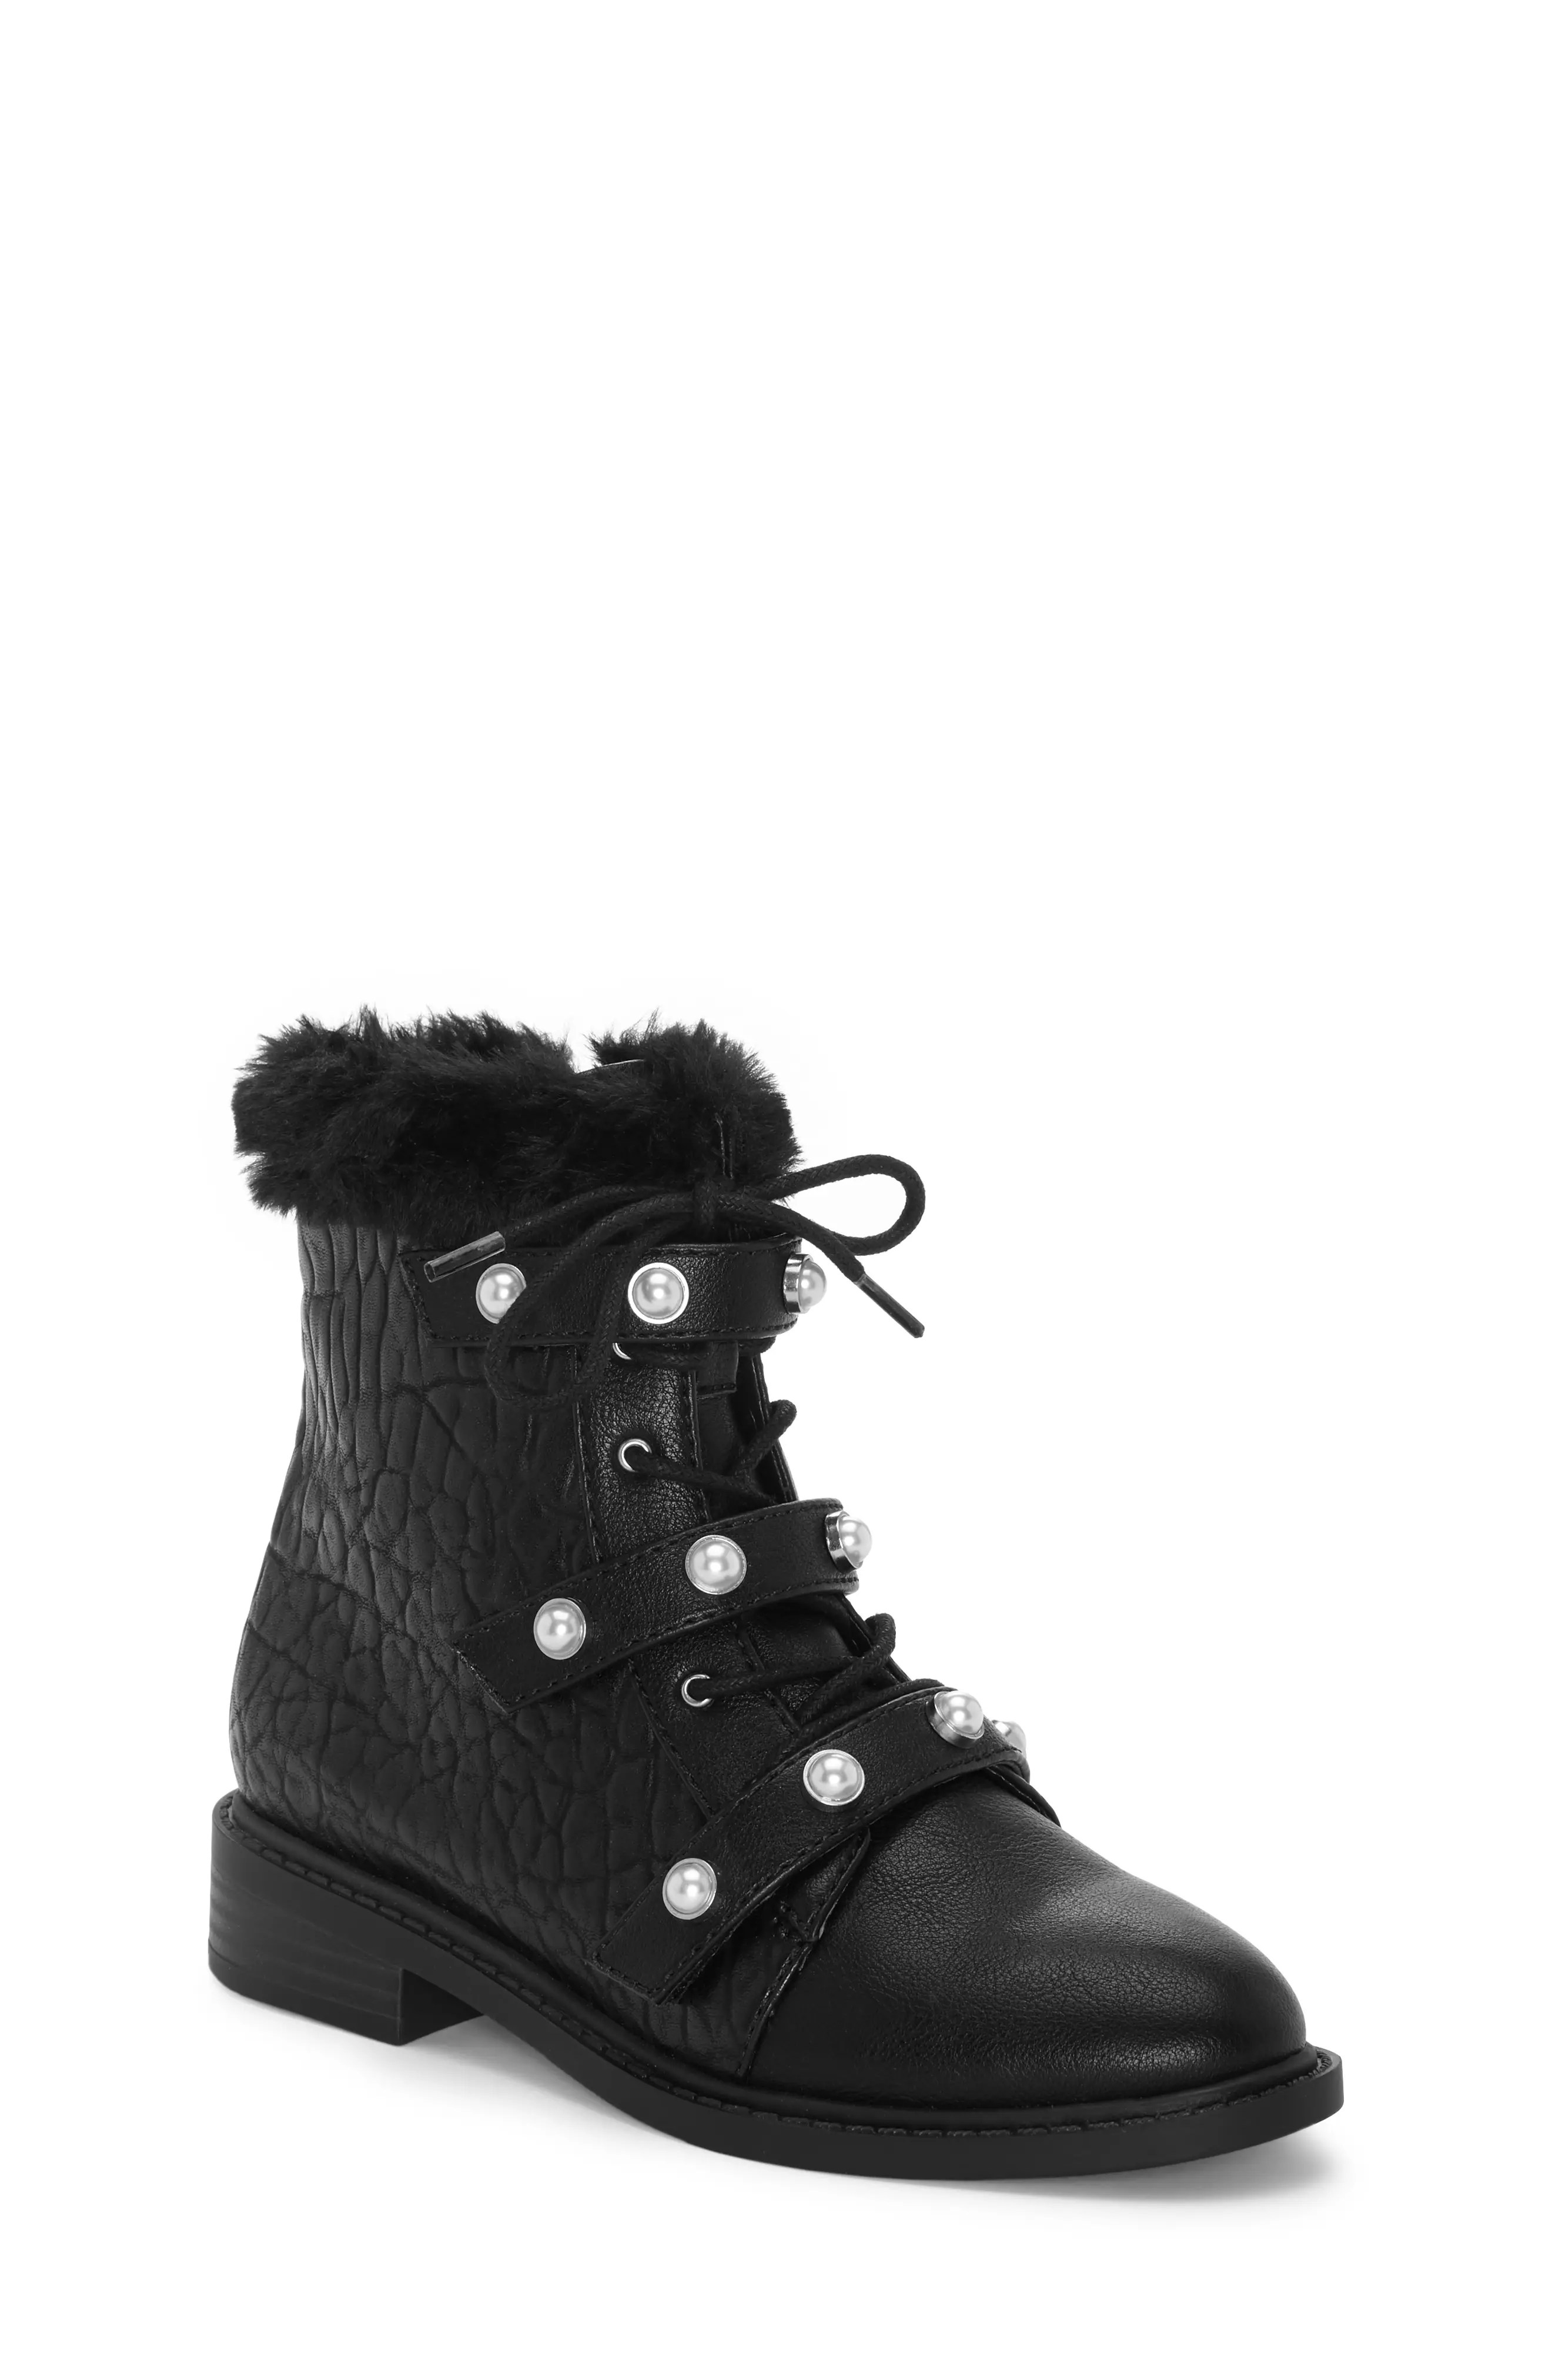 Vince camuto talei studded bootie toddler little kid  big also kids shoes nordstrom rh shoprdstrom